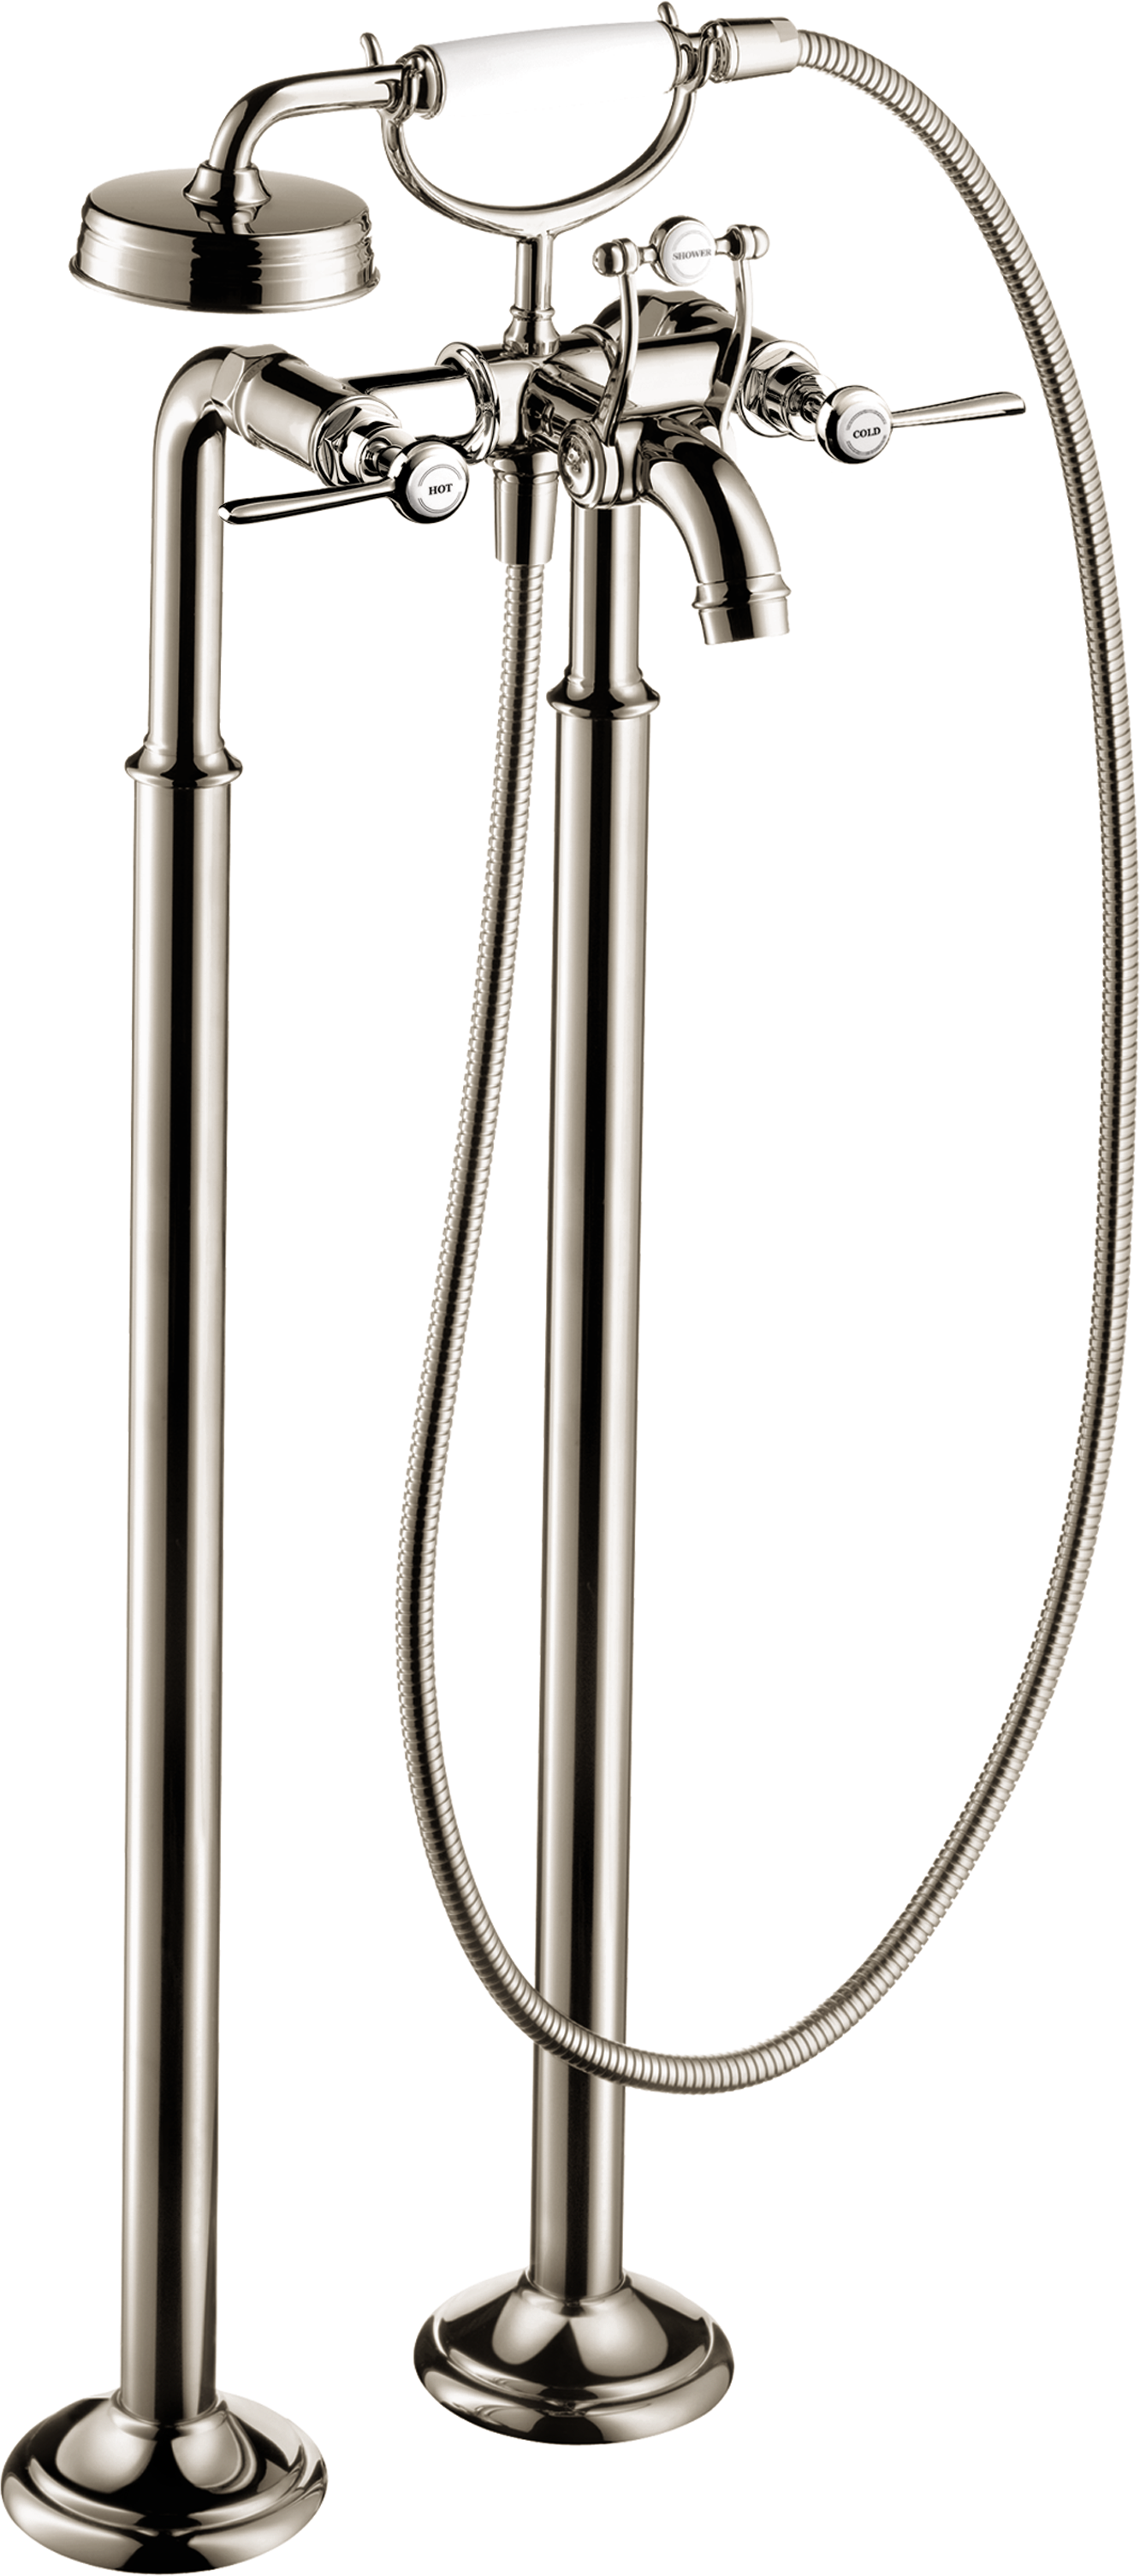 Axor AXOR Montreux Freestanding 2-Handle Tub Filler Trim with Lever Handles with 2.0 GPM Handshower